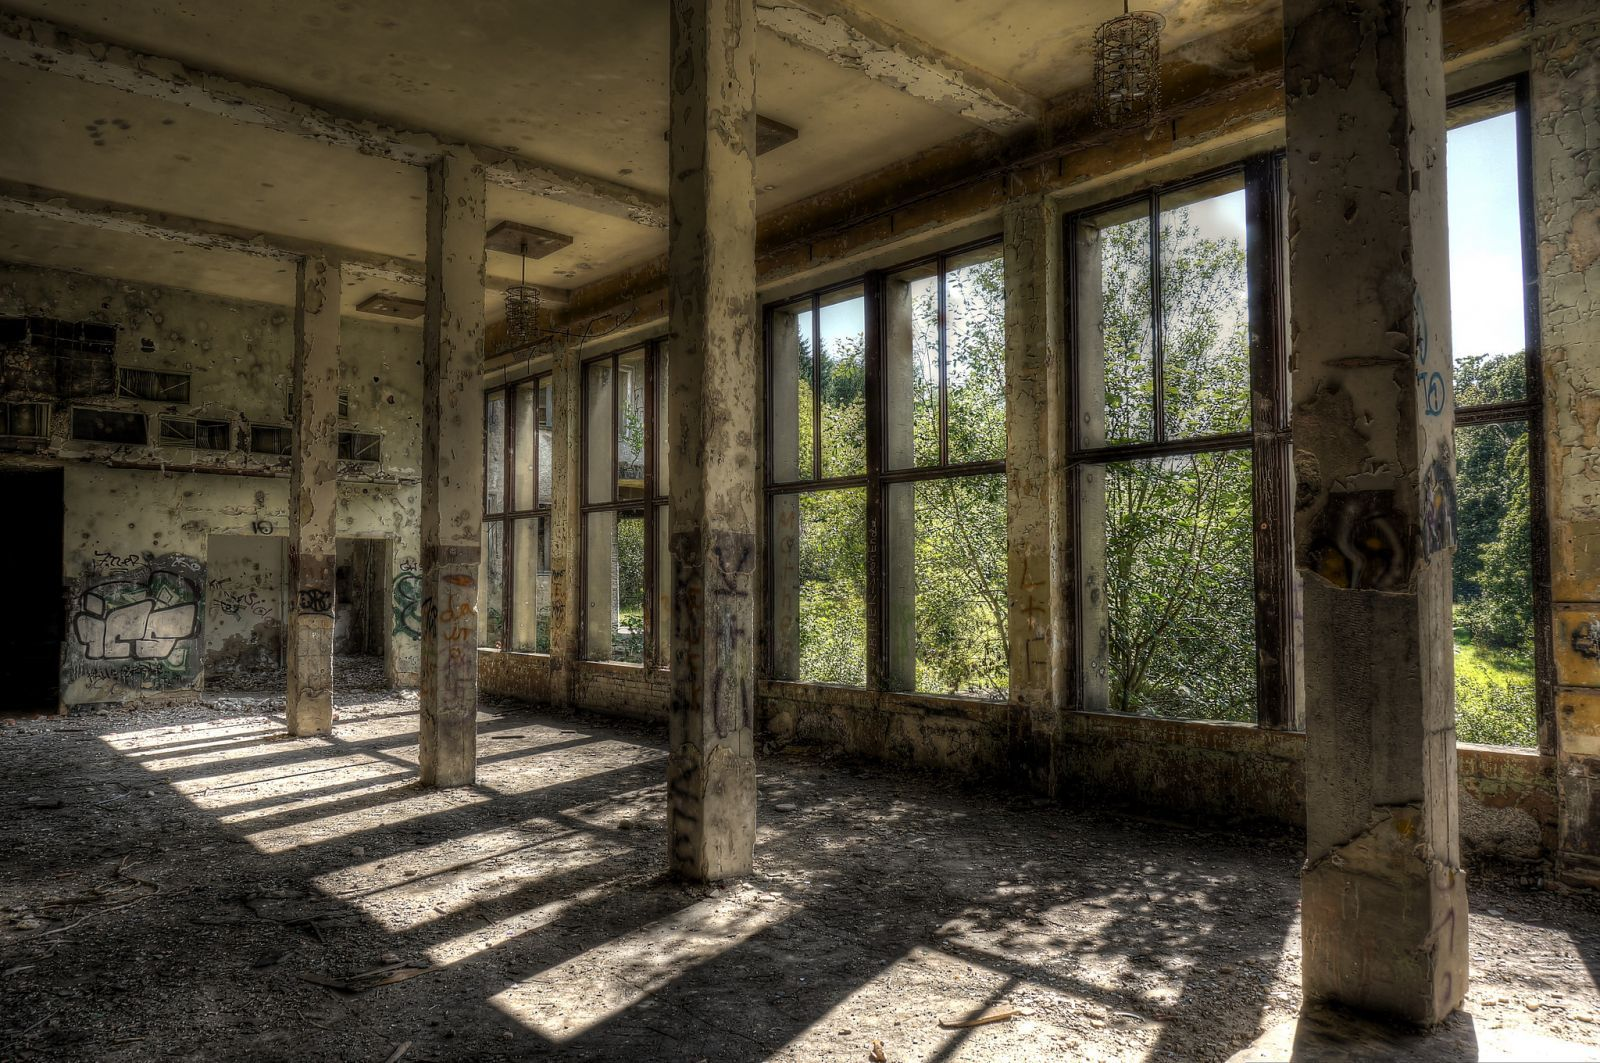 Socialist recreation home in East Germany 2 - Top 11 most haunted abandoned places in Germany